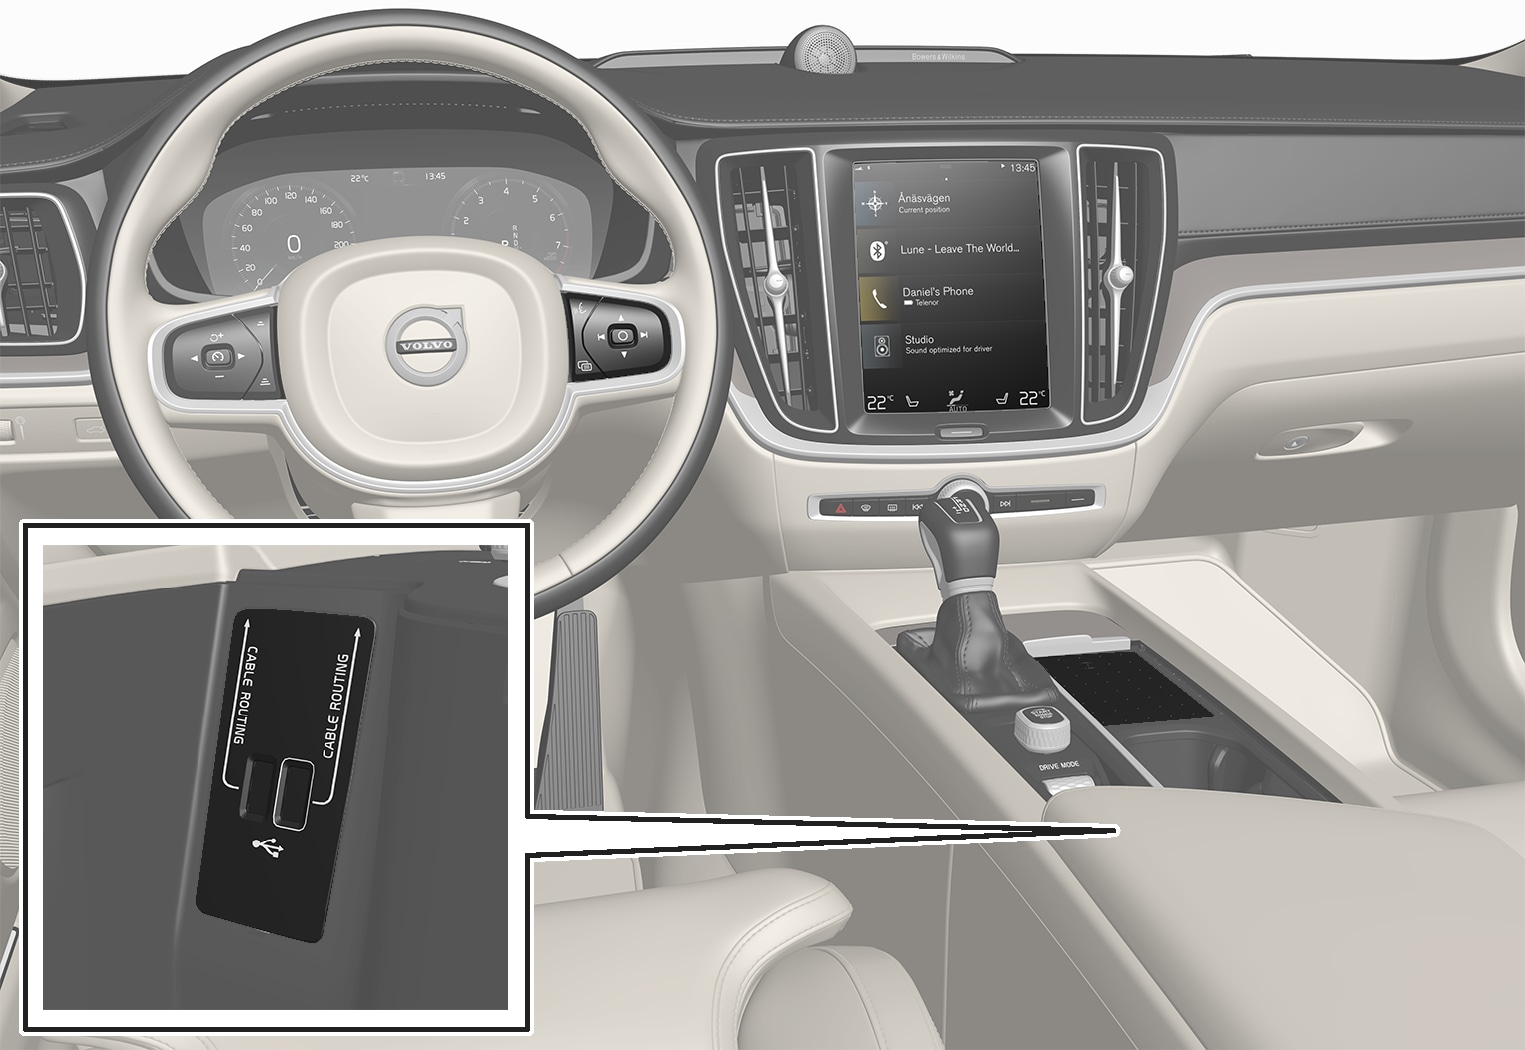 P5-2017-Overview infotainment